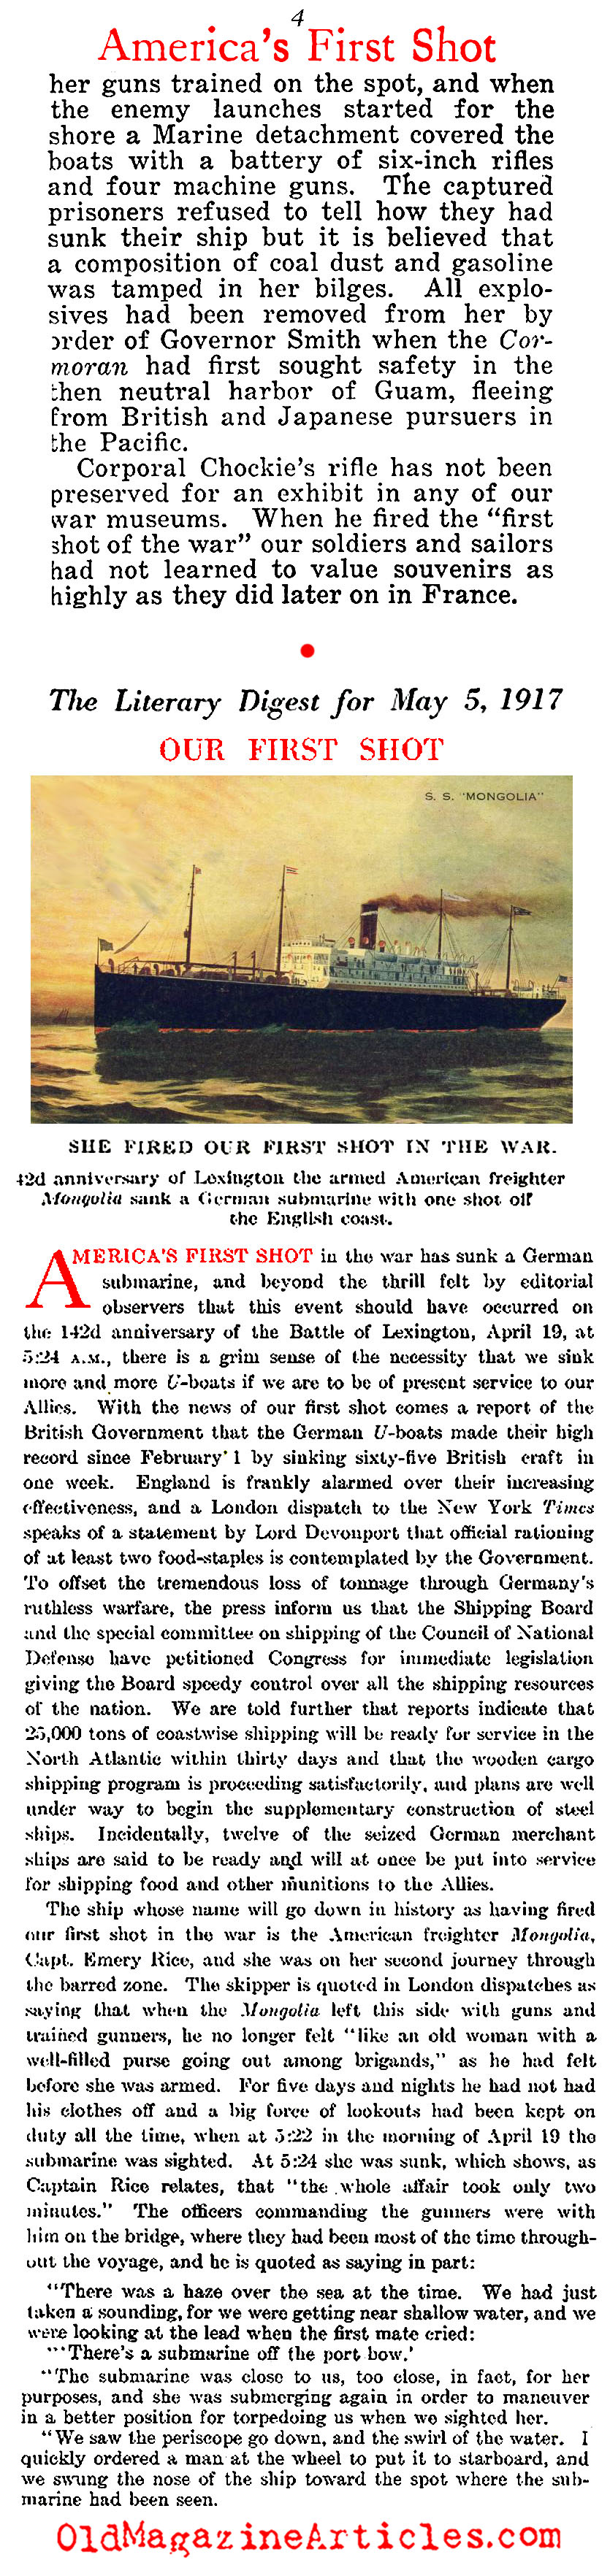 U.S. Navy Fired America's First Shot   (Literary Digest, 1917)